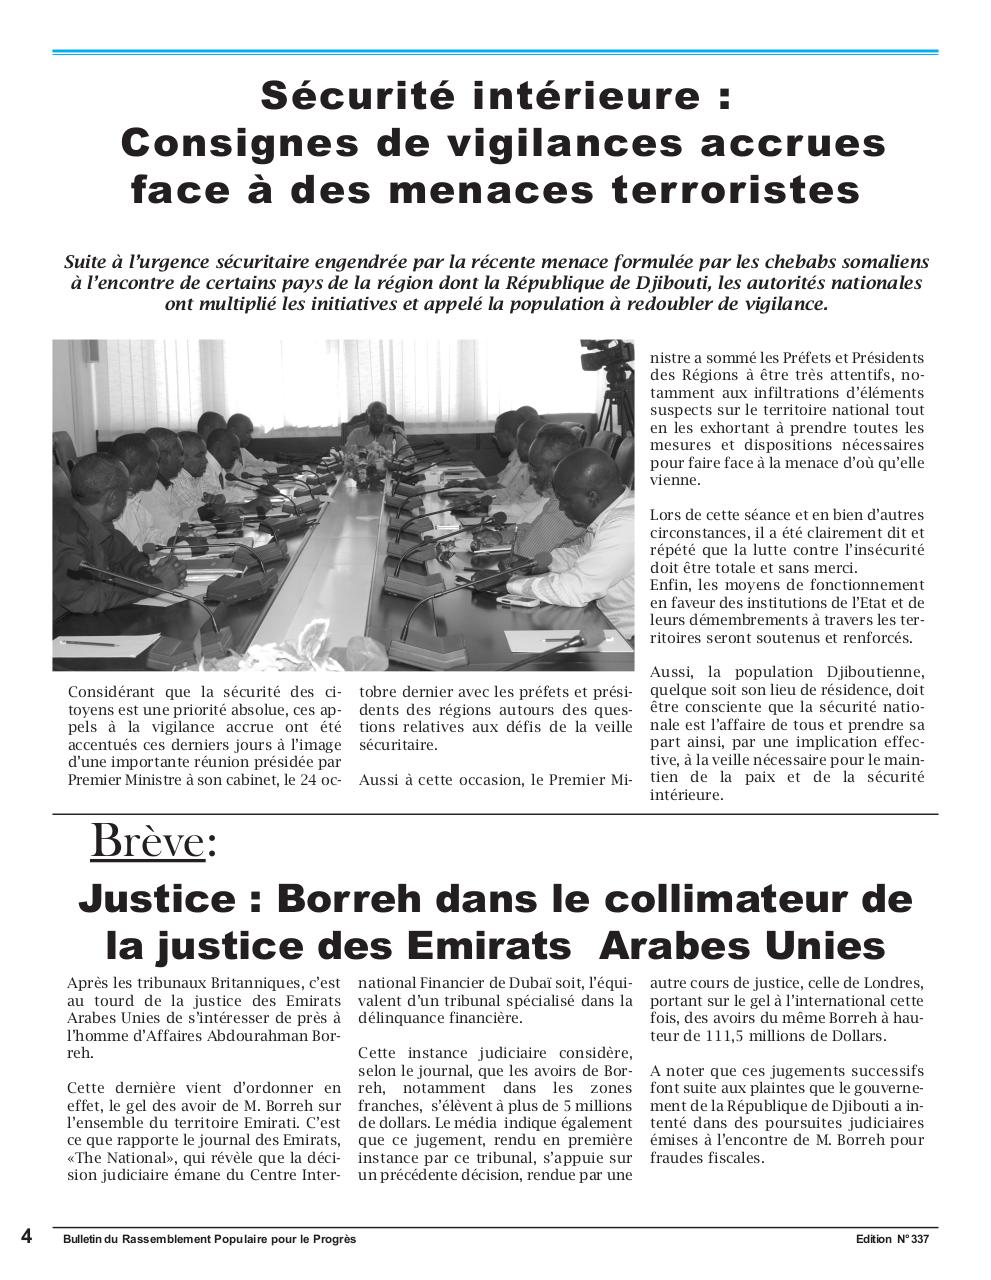 Journal Le progres Edition N°337 du 3 Novembre 2013.pdf - page 4/8